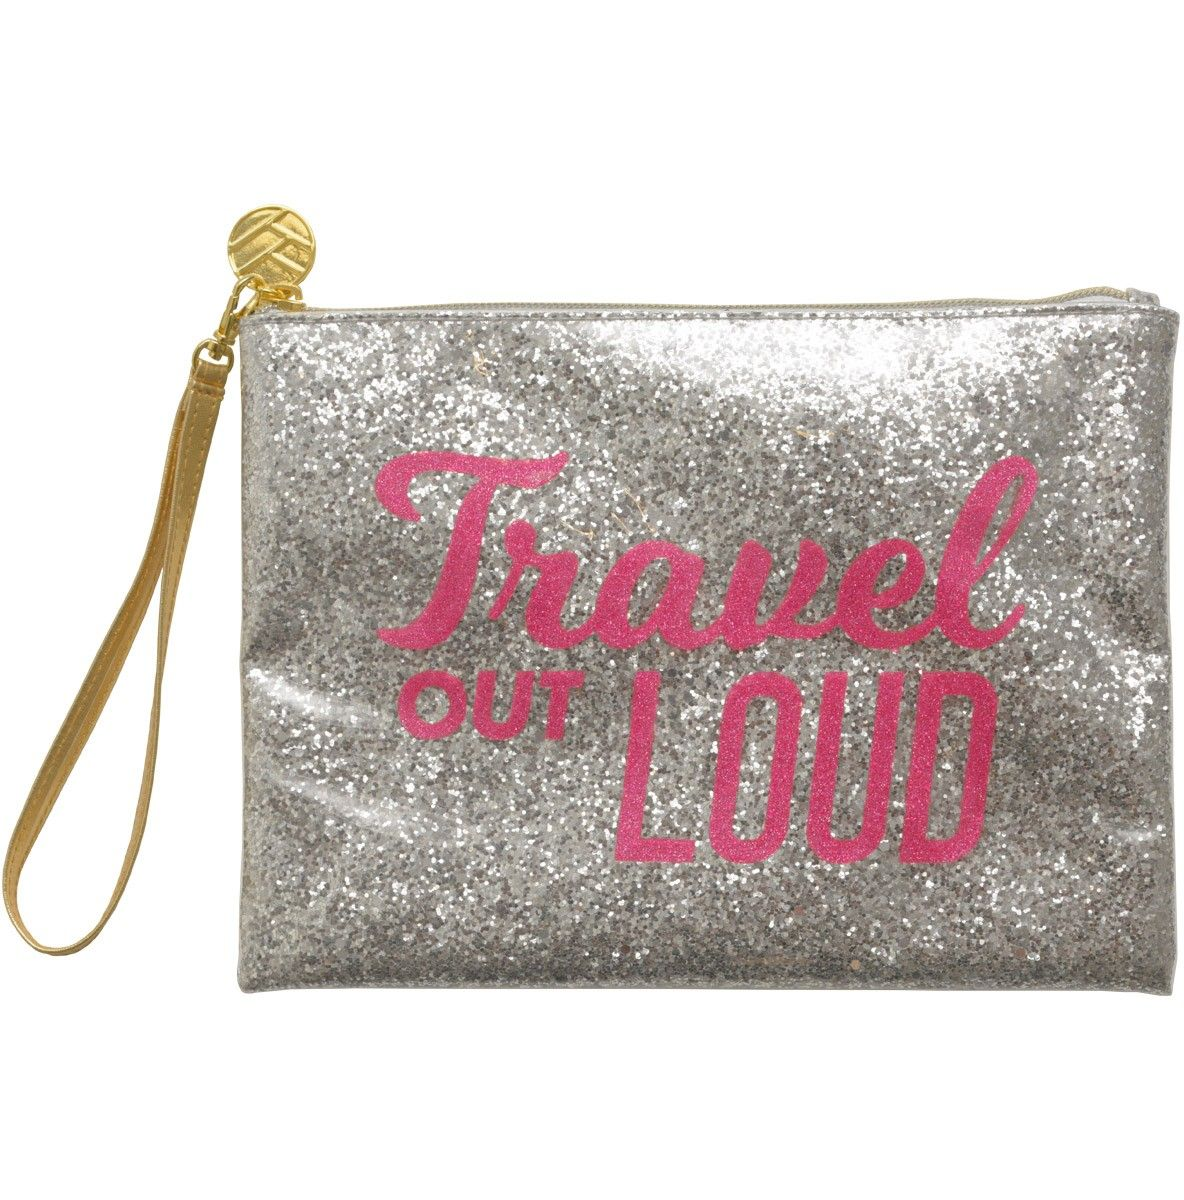 Channel your inner disco queen with one of our all-purpose glitter pouches. It doubles as a clutch so you can dance the night away in style. Also features a convenient wristlet.